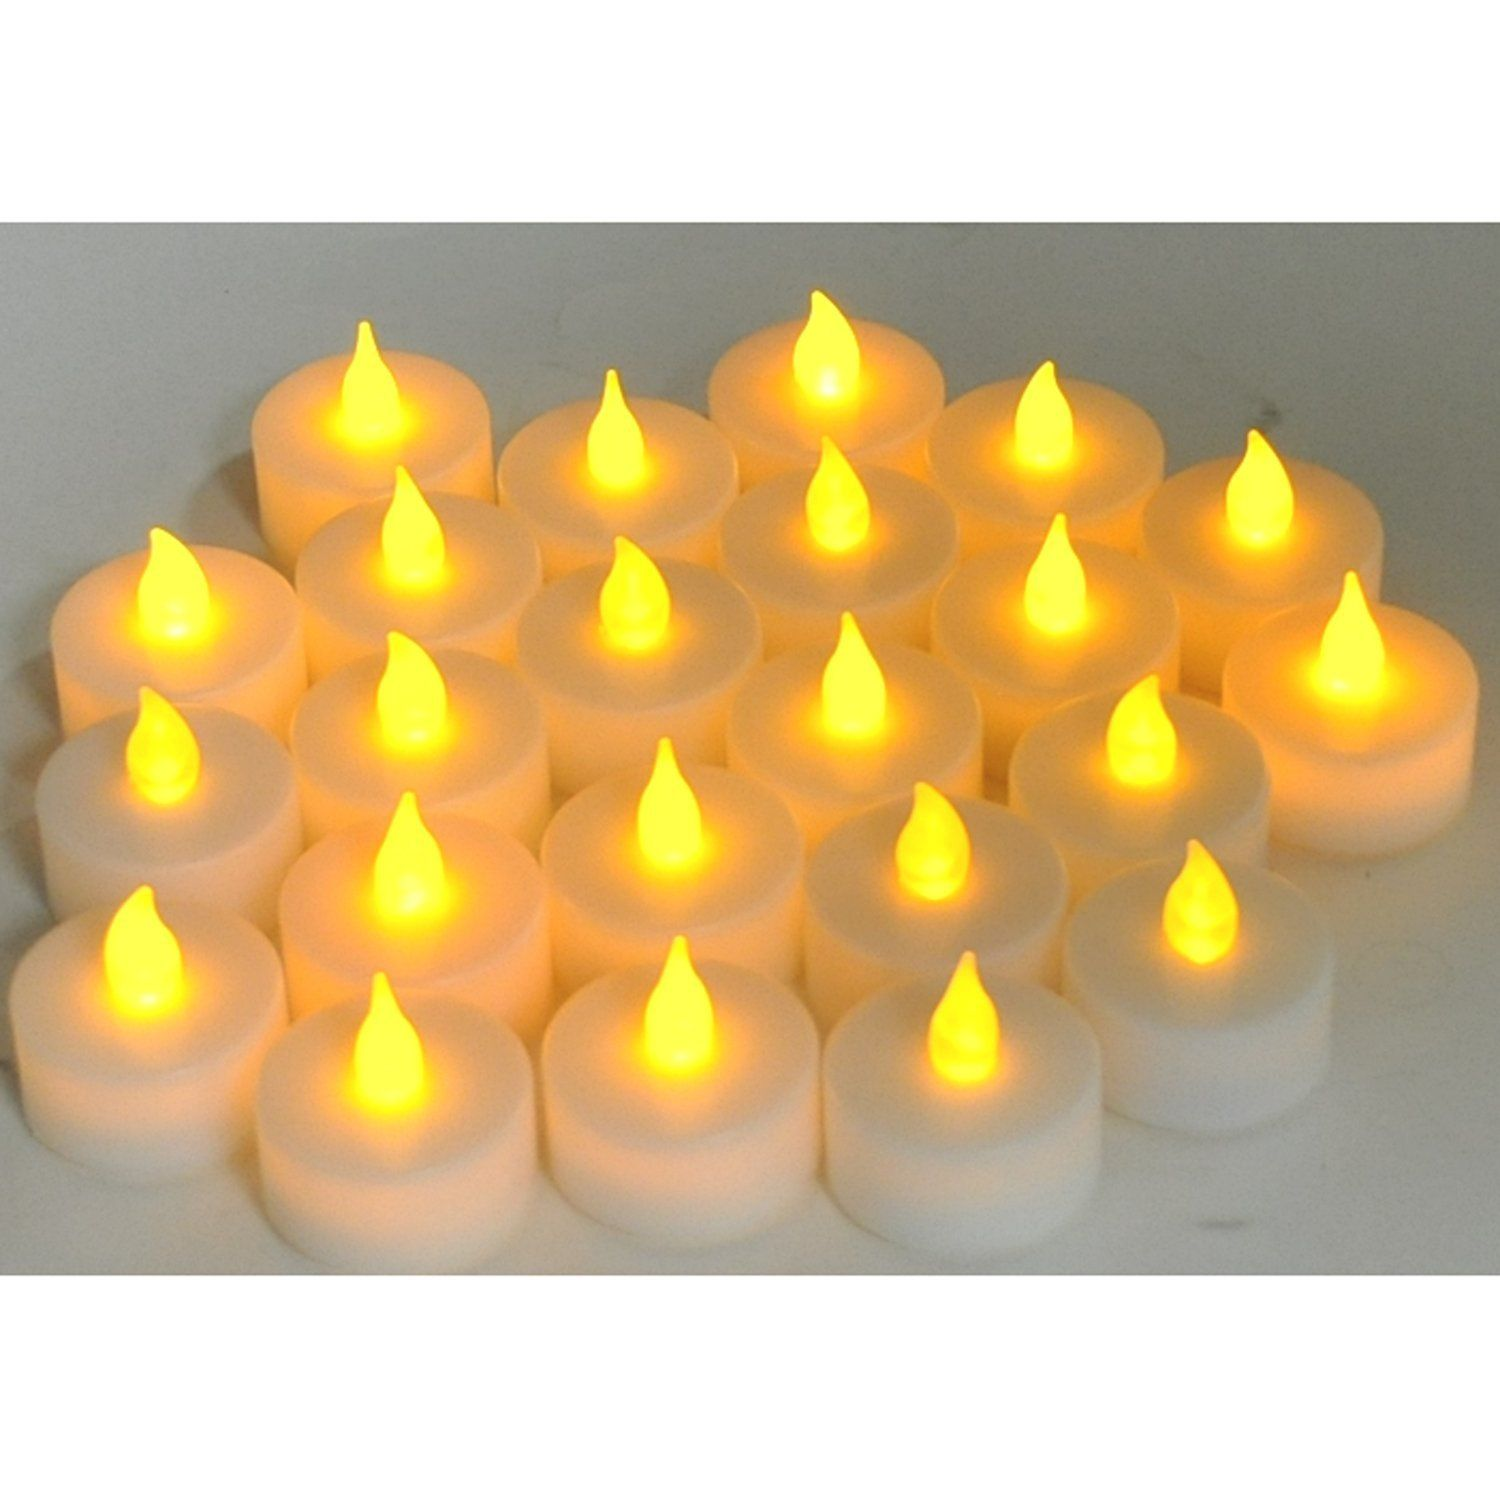 led light in battery powered candles tea flameless customer unscented rated magicpro best reviews helpful lighting fake com operated pcr amazon tealight lights